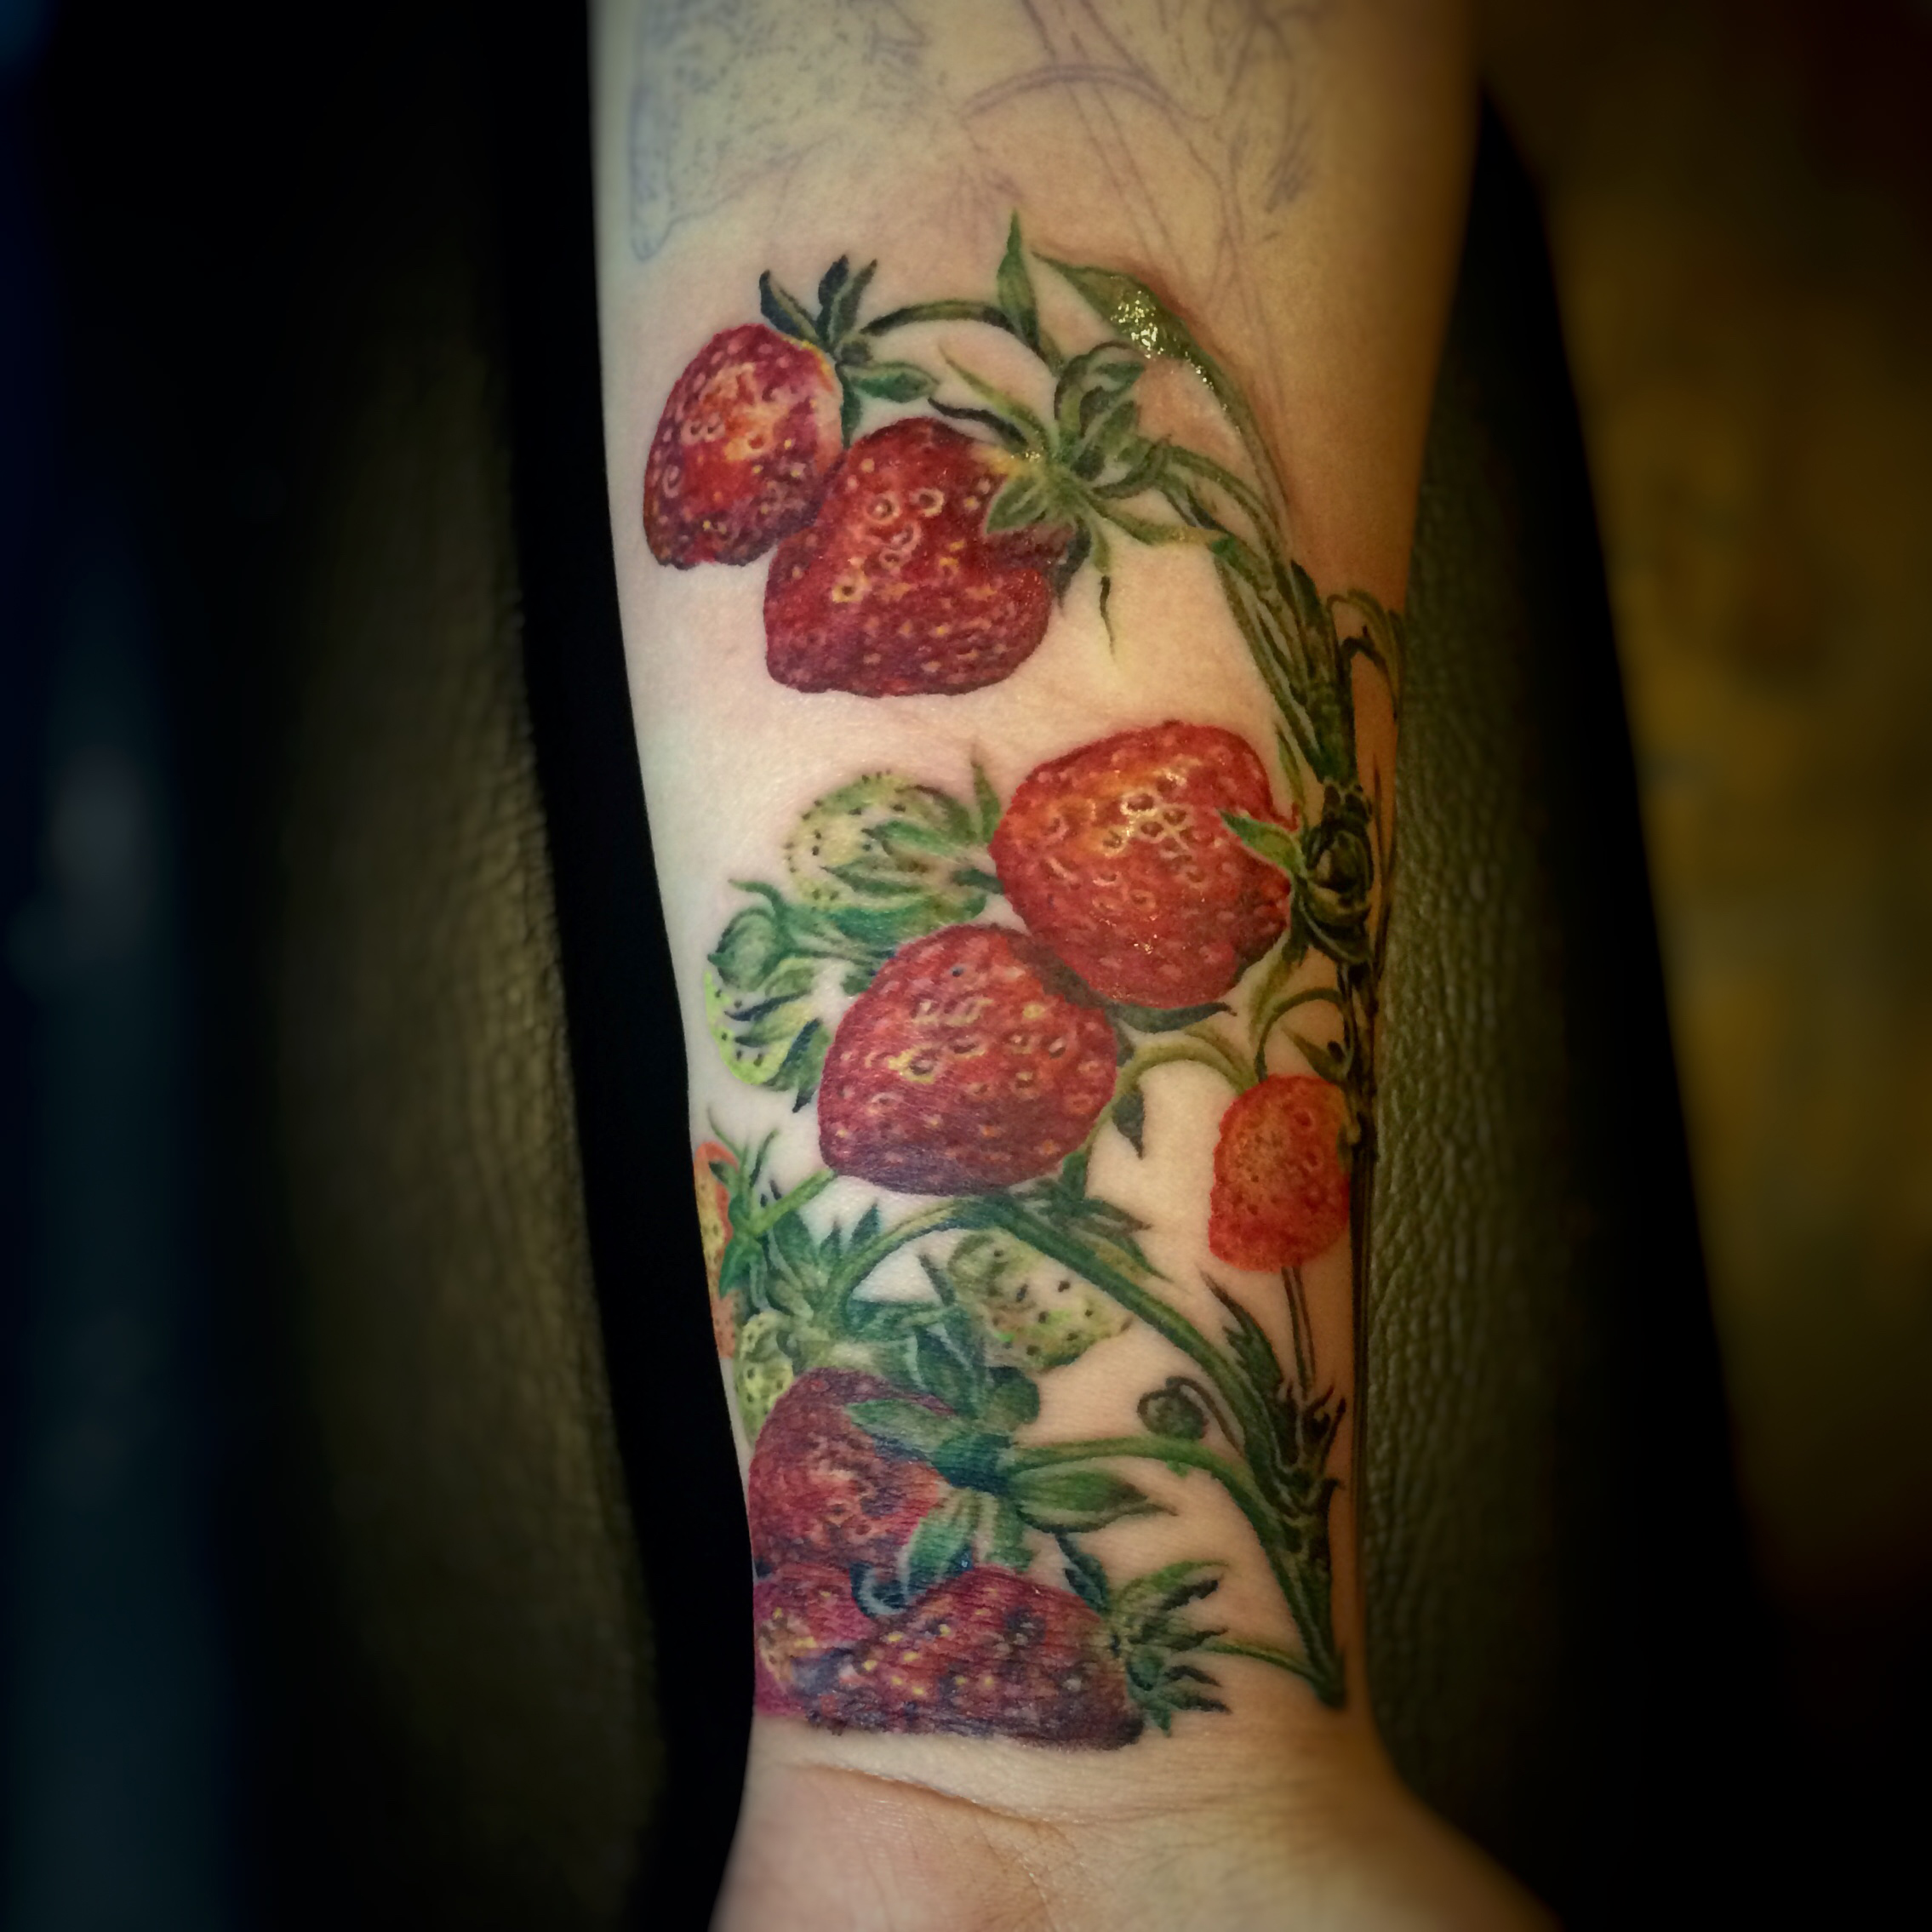 Rocha_Camila_strawberries.jpg